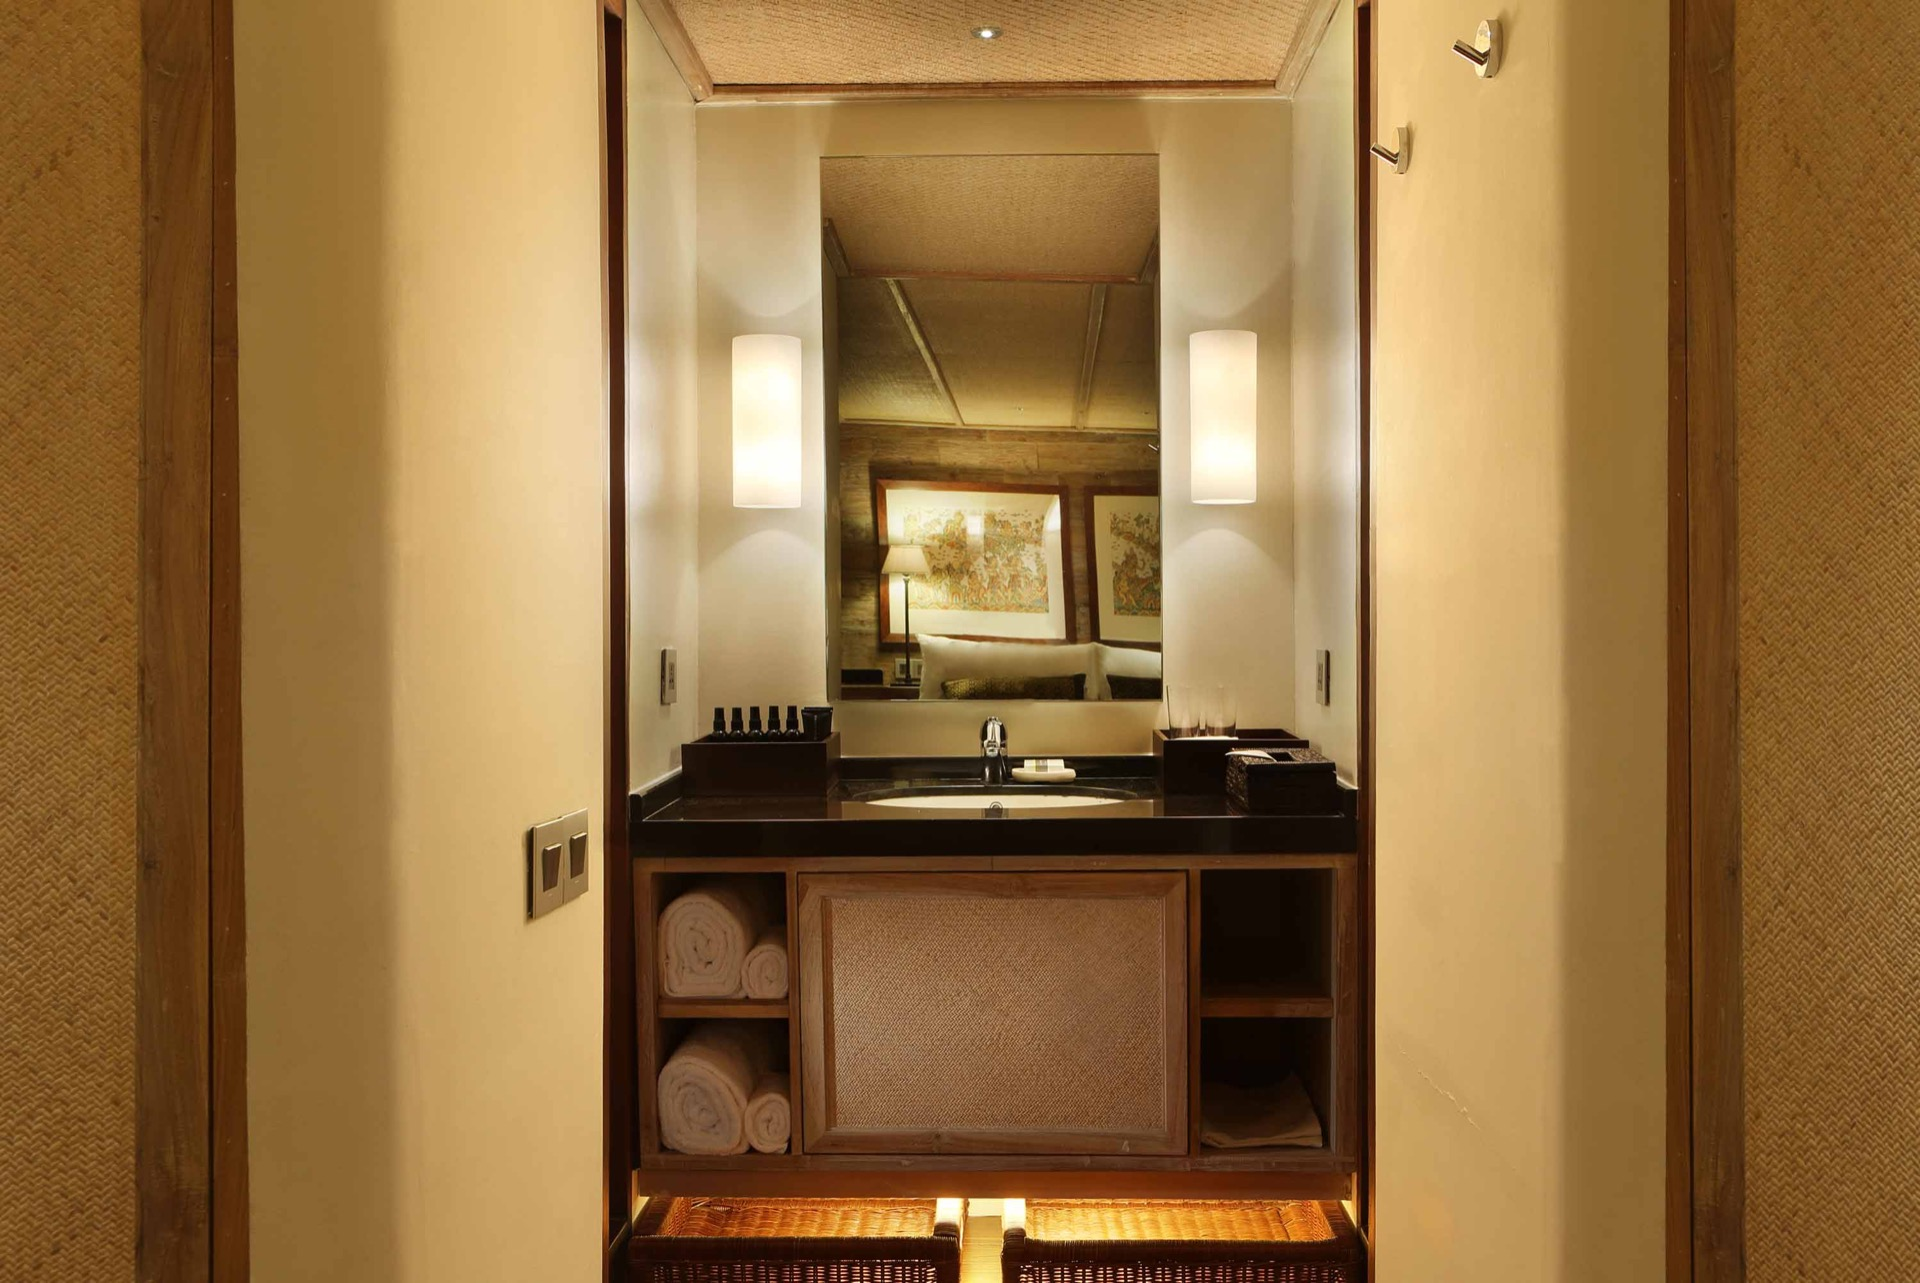 Alila Purnama Bathroom